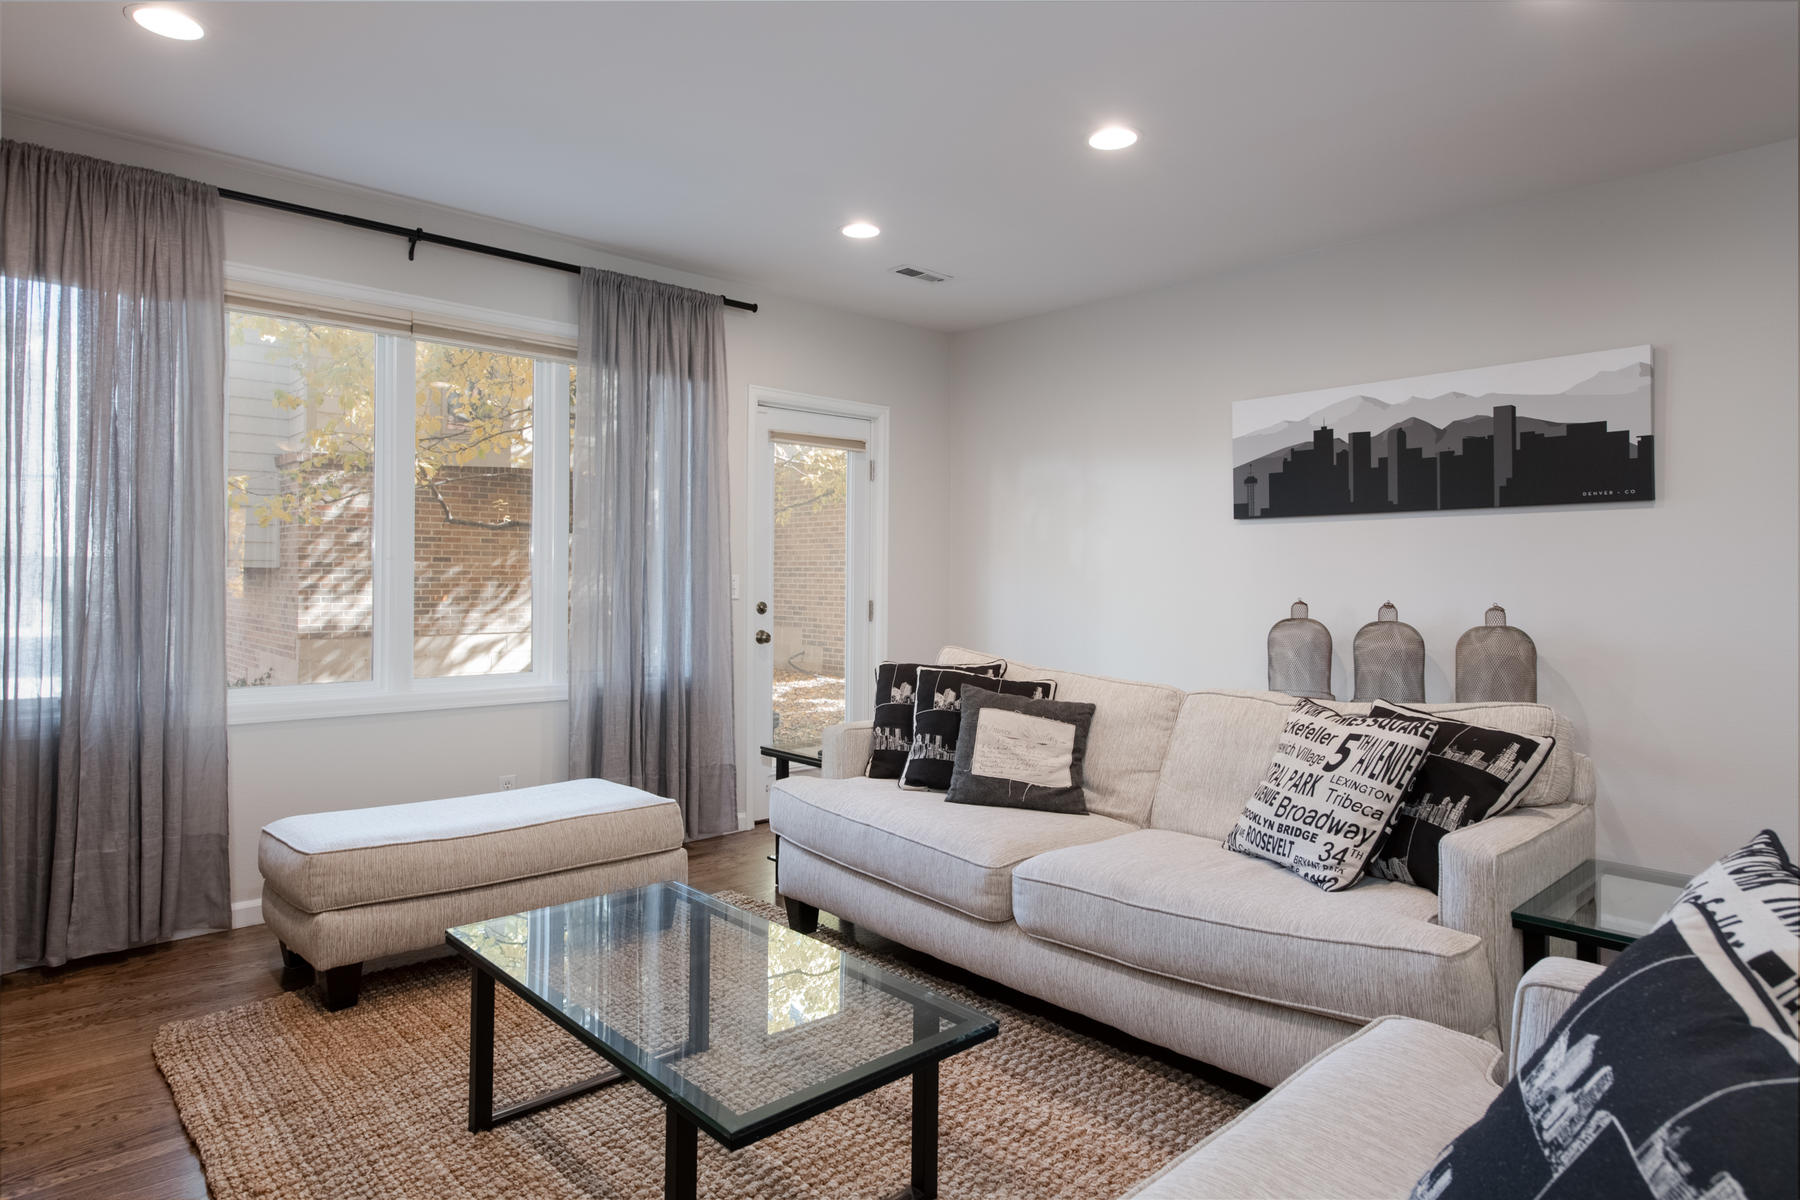 Additional photo for property listing at Striking Town Home In Cherry Creek Is Truly A Must See! 160 S Jackson St Denver, Colorado 80209 United States